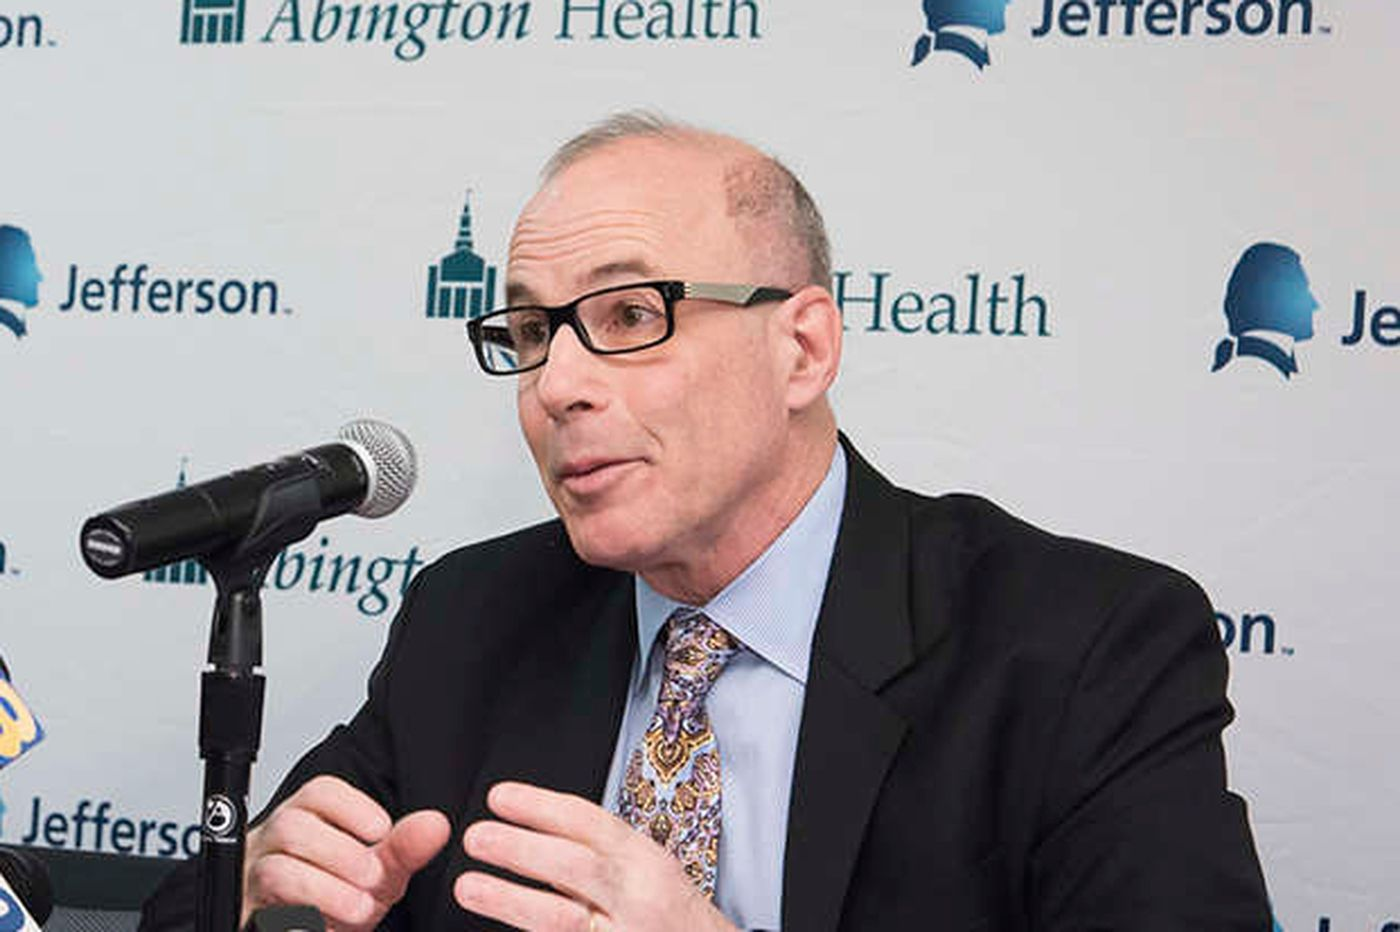 Jefferson to eliminate 500 positions and trim top executives' pay as losses mount from COVID-19